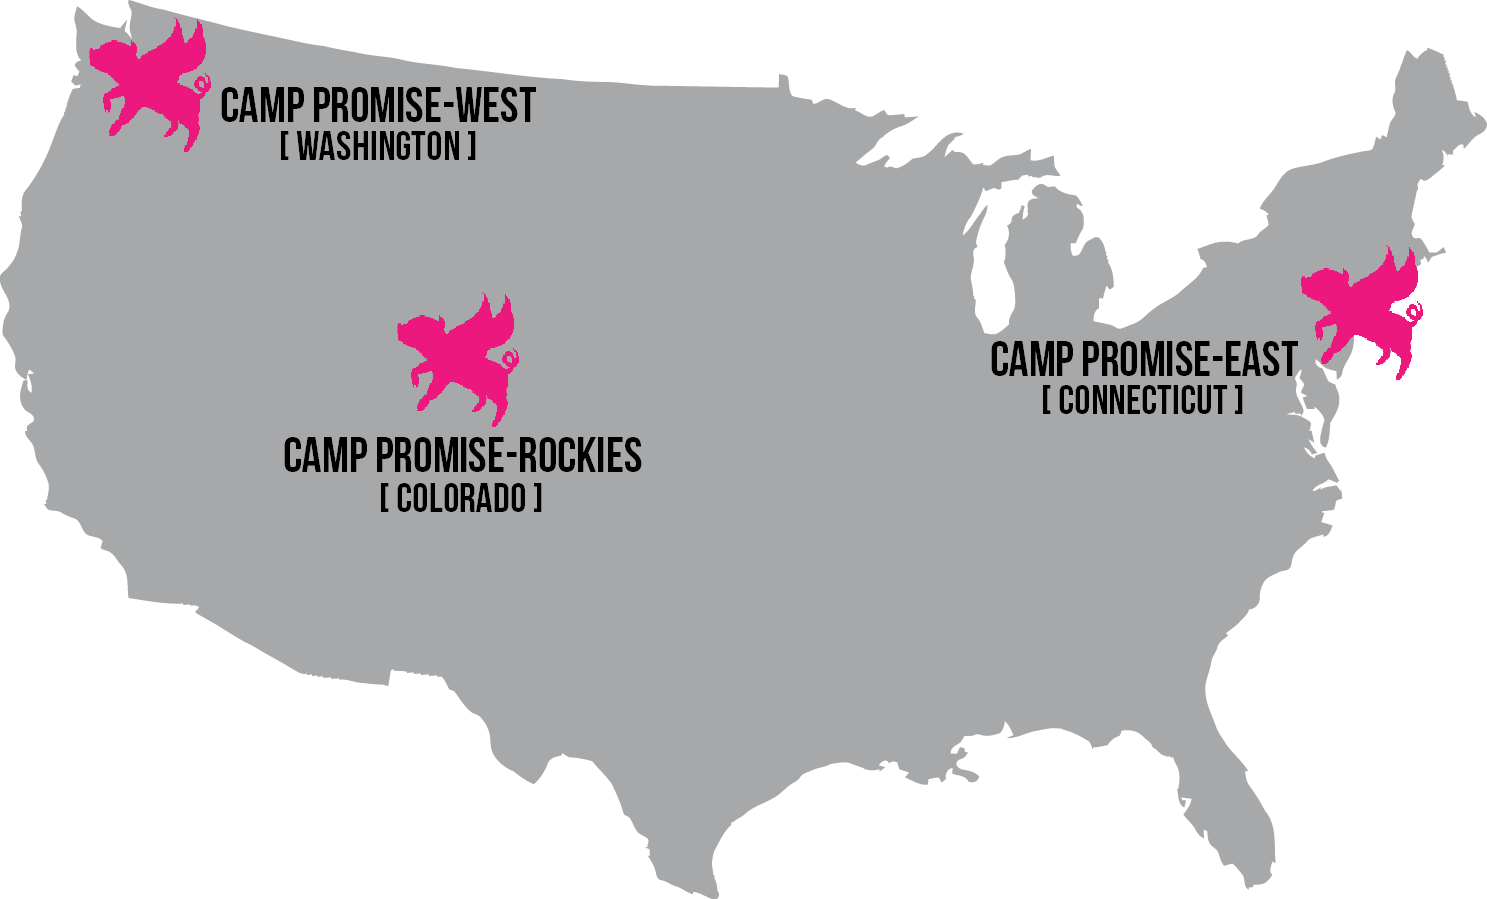 Our current Camp Promise locations.